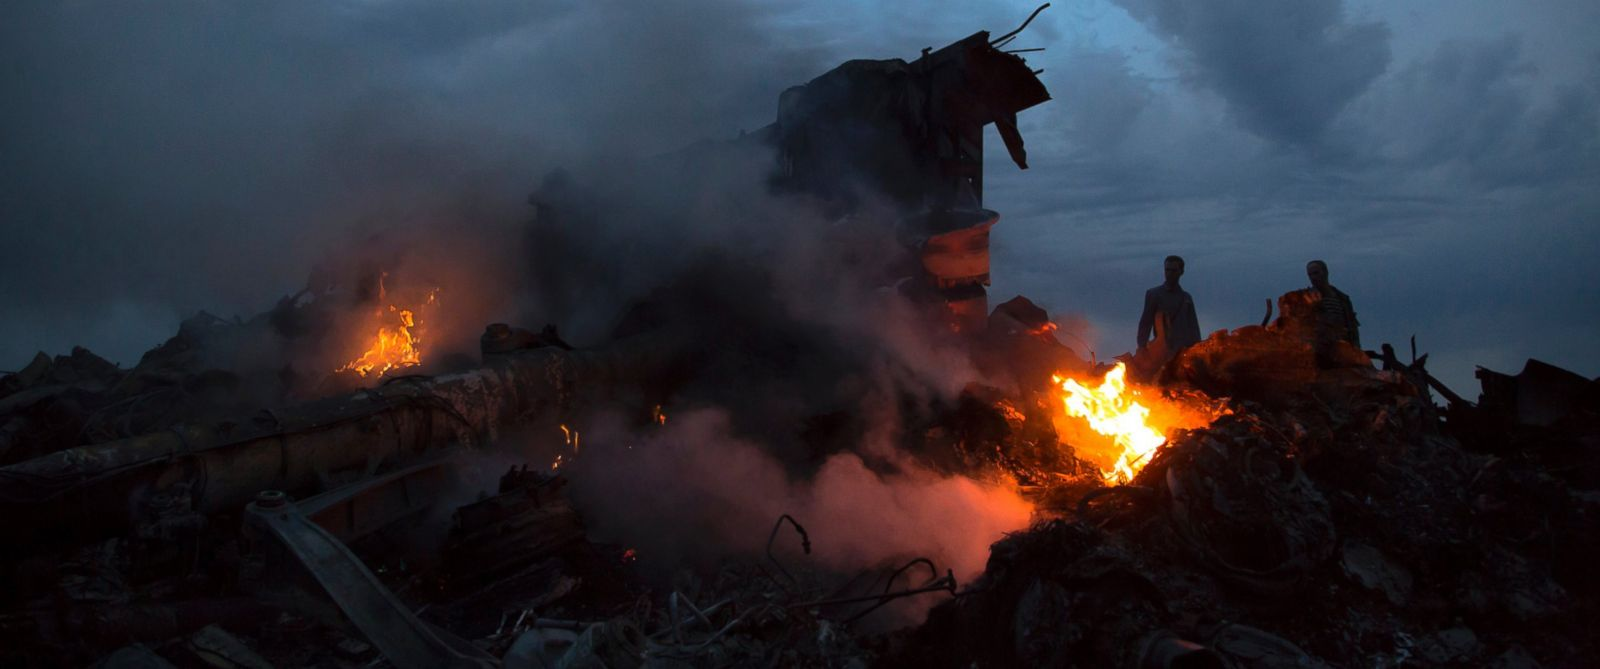 PHOTO: People walk amongst the debris at the crash site of a passenger plane near the village of Hrabove, Ukraine, Thursday, July 17, 2014. Ukraine said a passenger plane was shot down Thursday as it flew over the country.